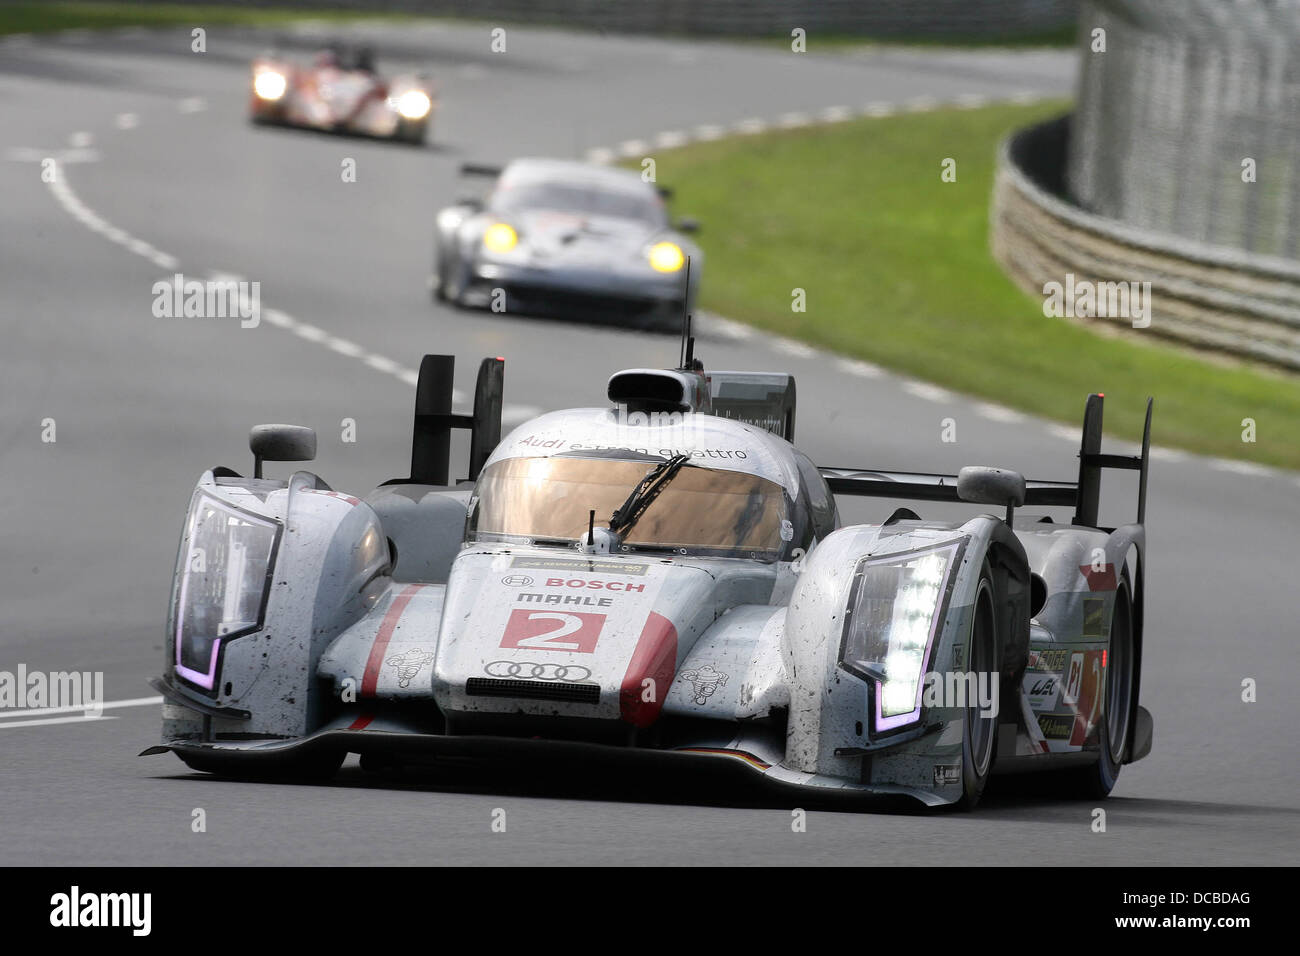 The Audi of McNish, Kristensen and Duval wins the 2013 Le Mans 24 Hours. - Stock Image